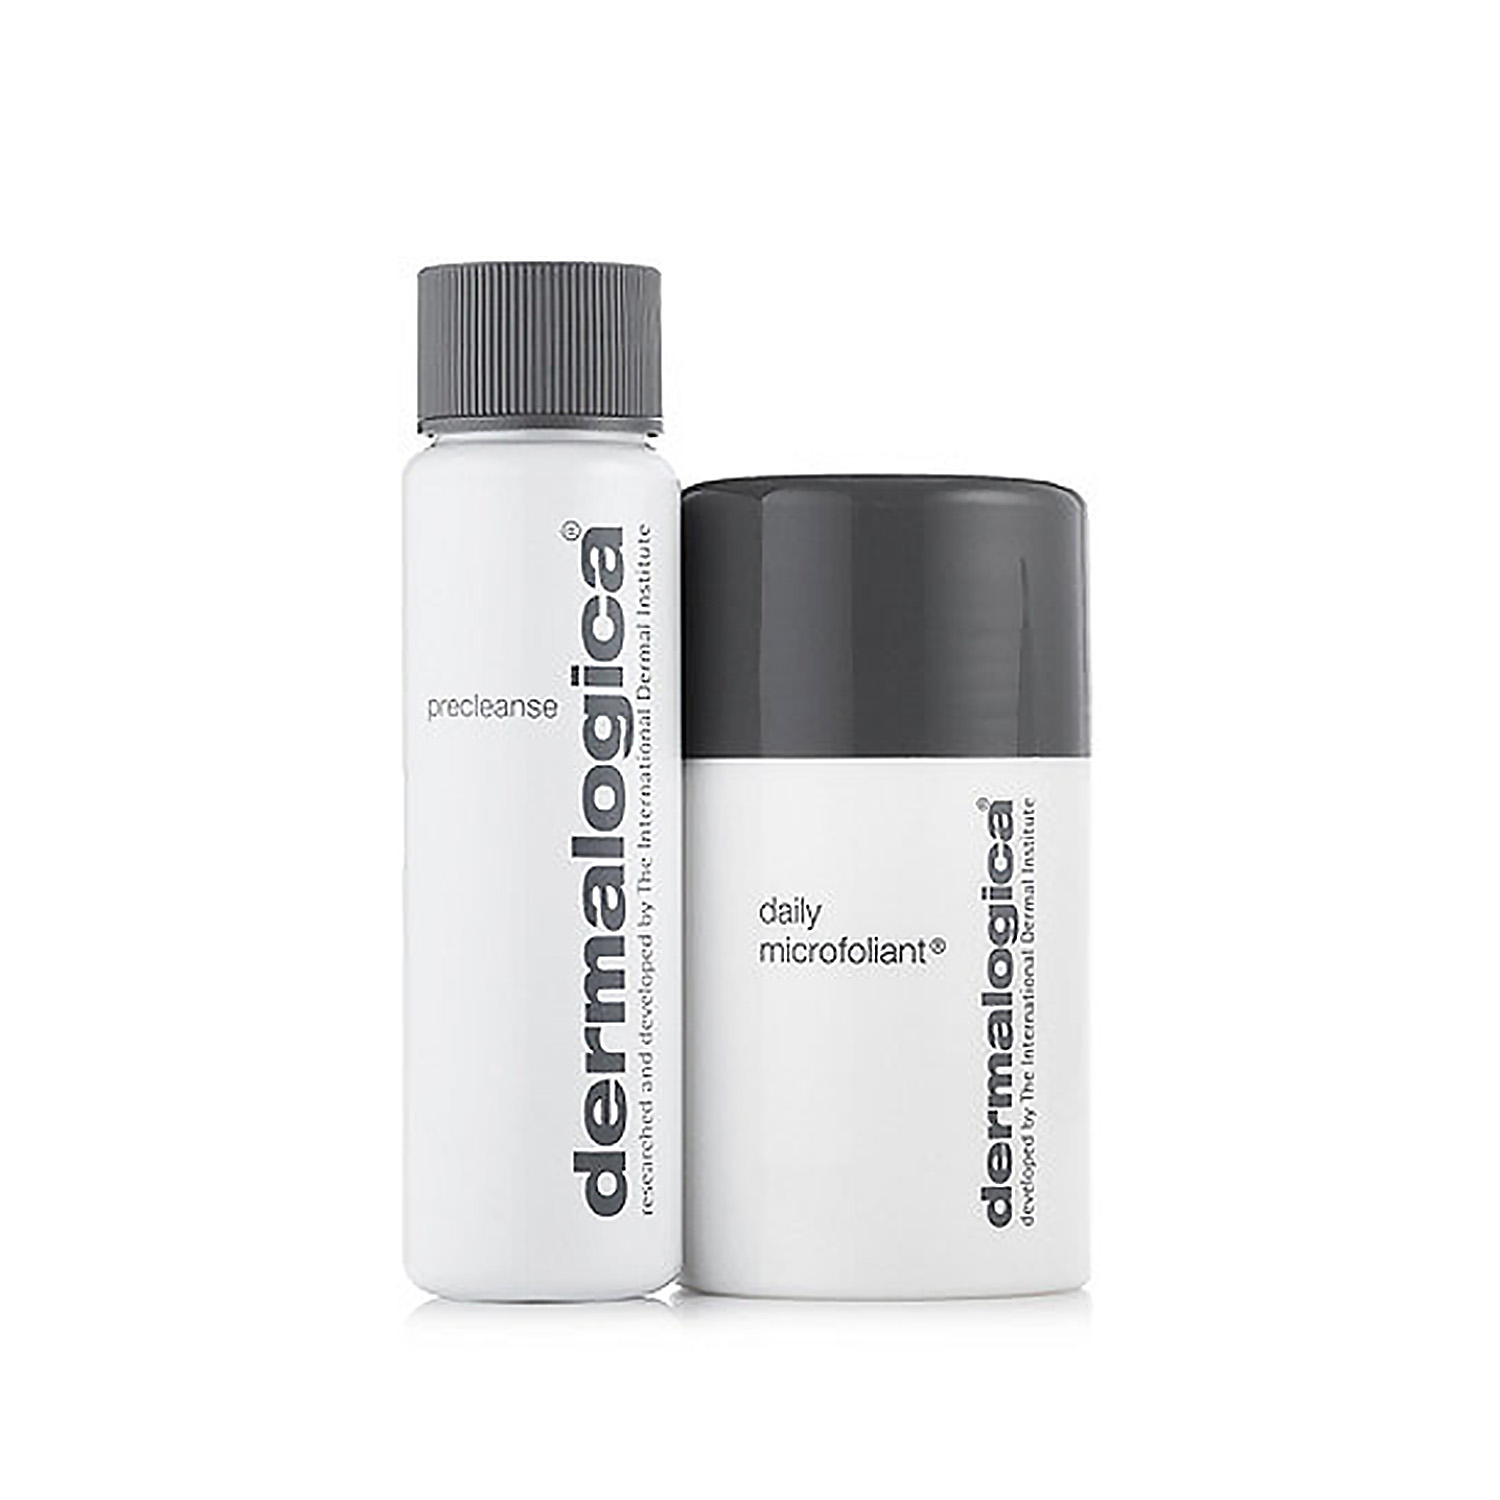 Dermalogica power cleanse duo [limited edition] [$27 value] (set)